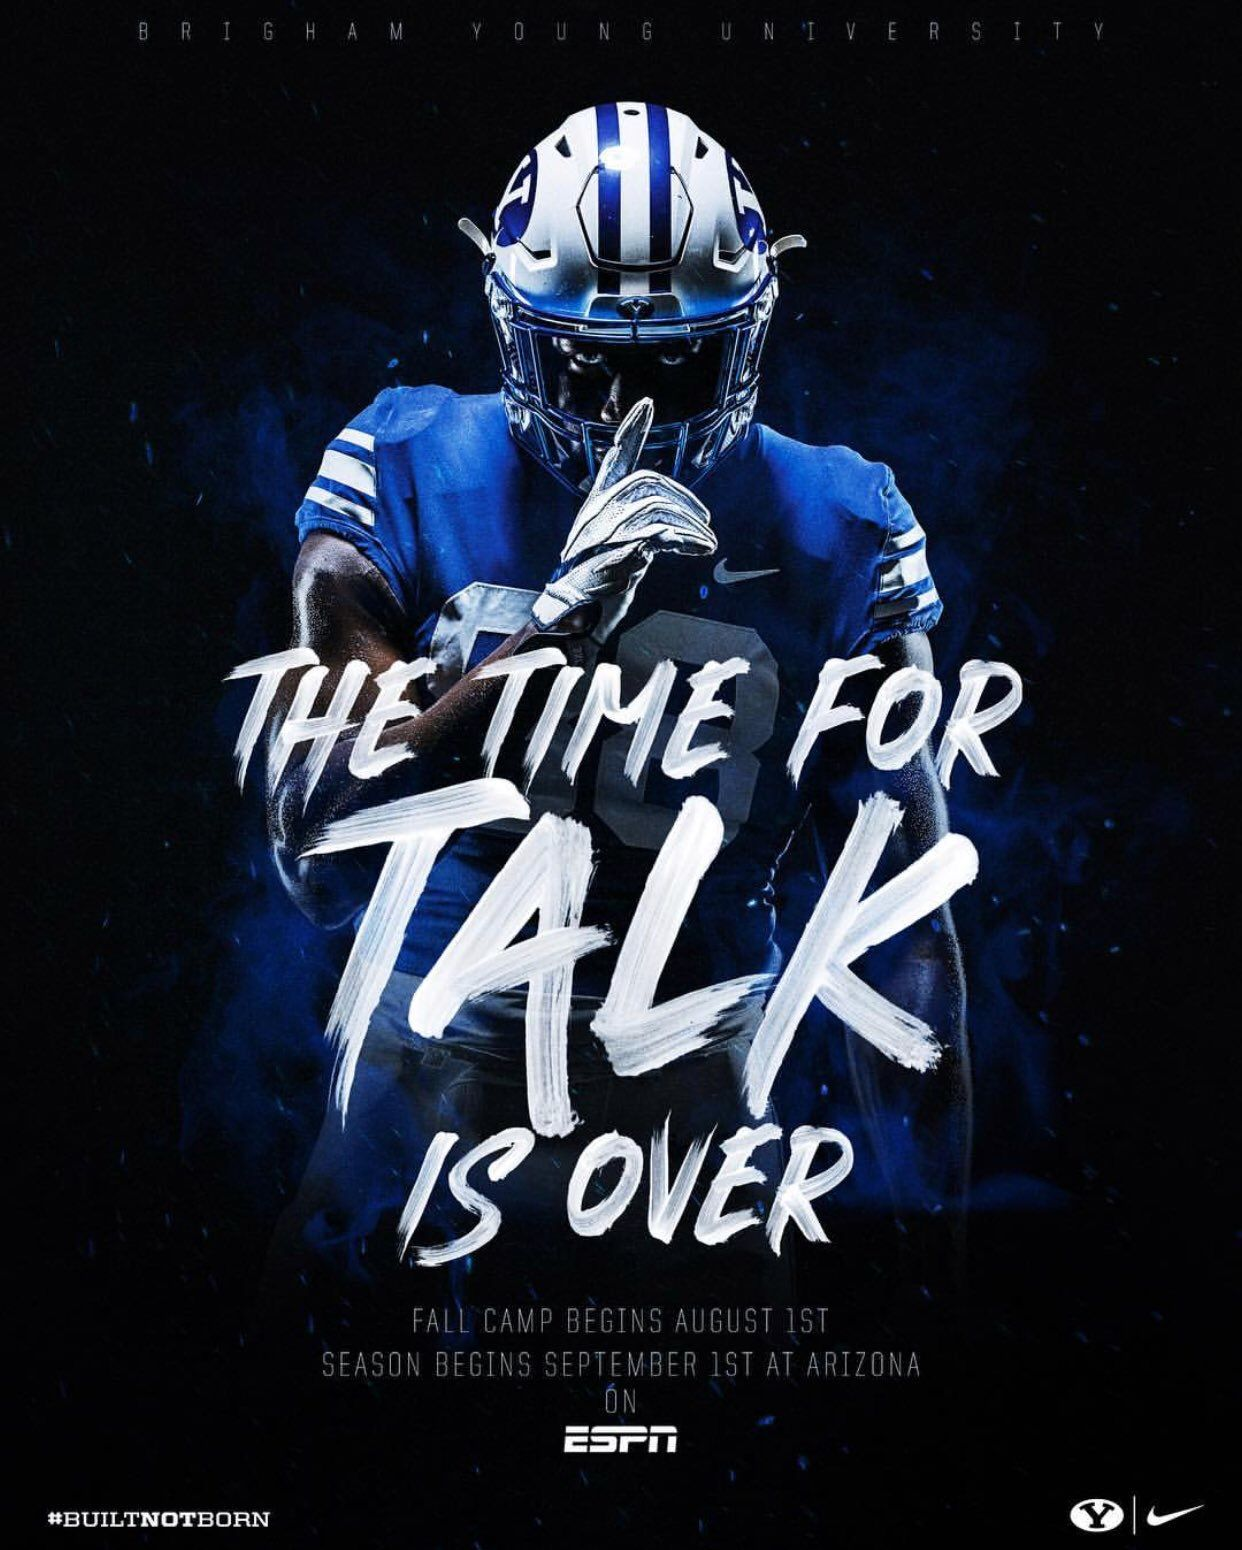 Pin By Ryan Oglesby On Byu Stuff Sports Graphic Design Byu Football Sports Graphics